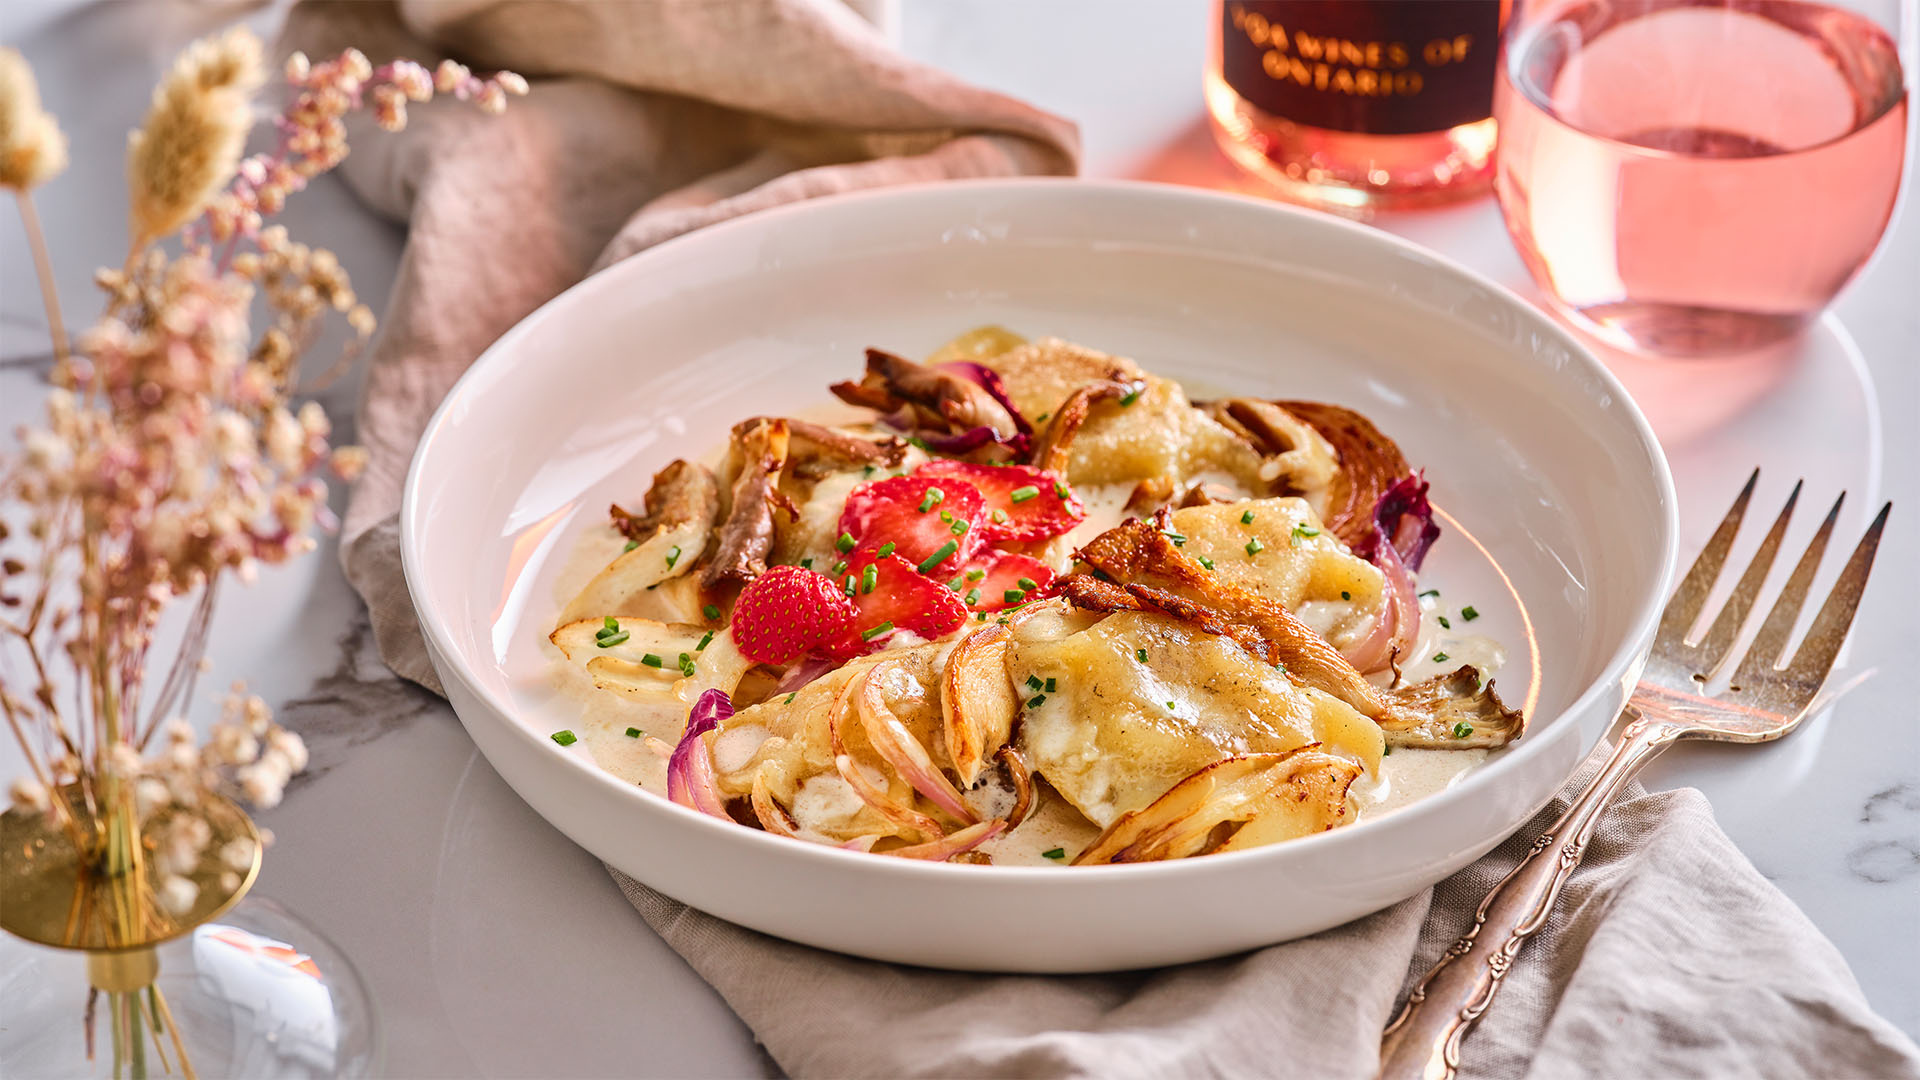 A white bowl is filled with duck pierogies with creamy Ontario parmesan sauce next to a glass filled with rose wine.